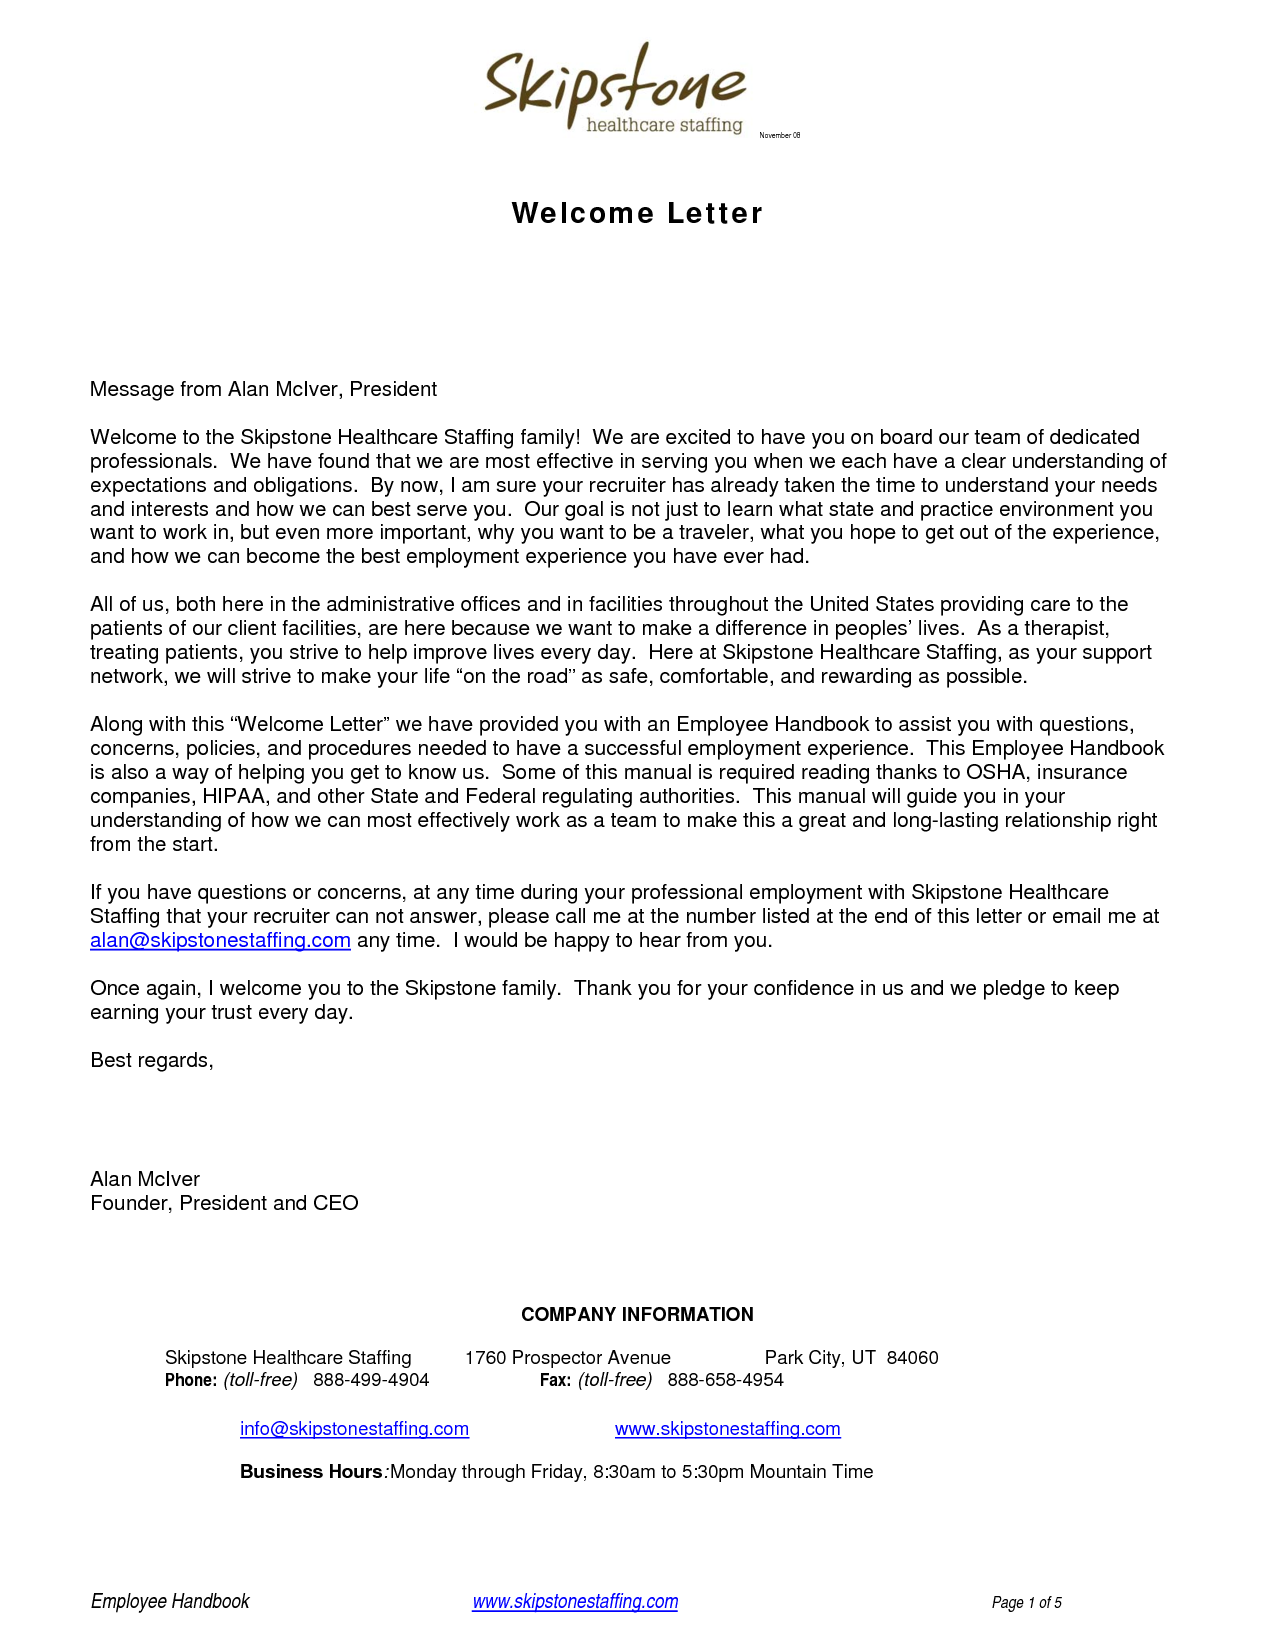 how to write a welcome letter This new hire welcome letter template is designed to help your hr team start an  effective onboarding process for your new employee.